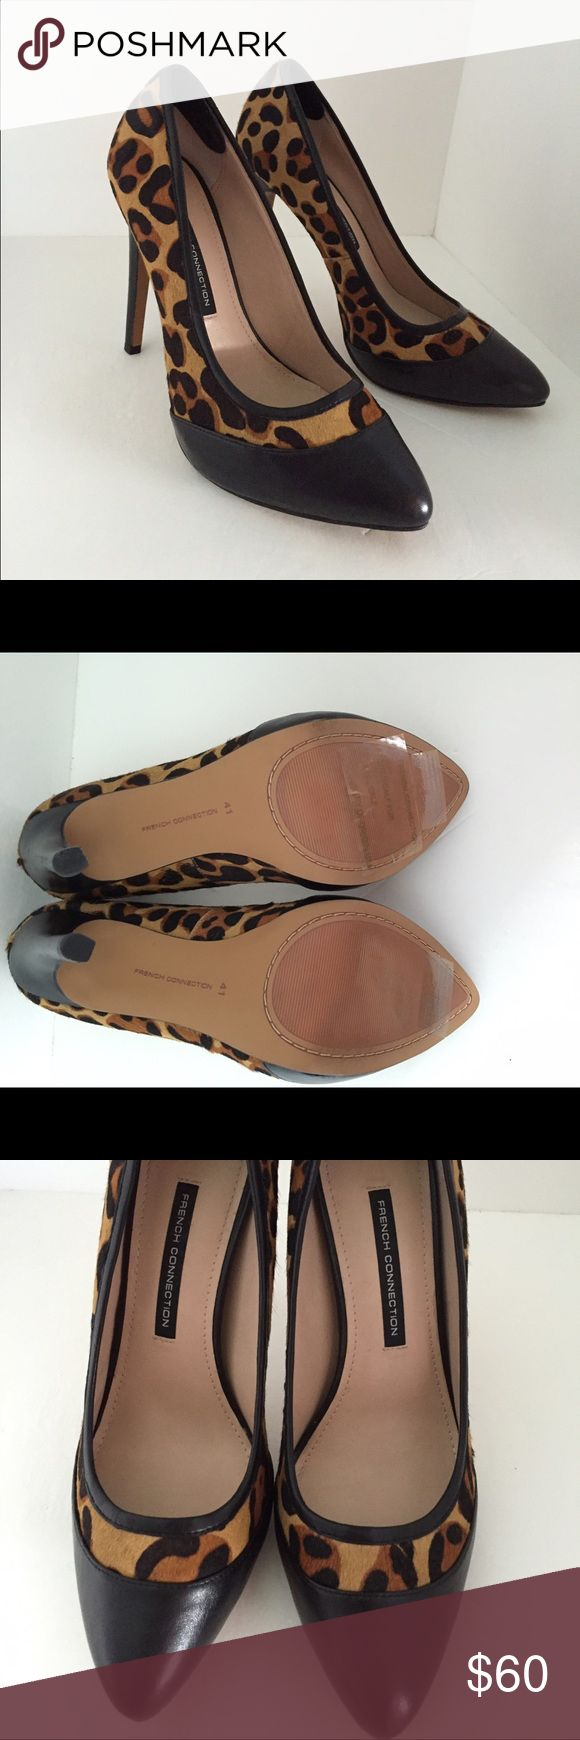 👠NWOT French Connection👠 Leopard French Connection Heels Sz41. (French Connection size chart for sz41 =10)New never worn. Black leather and real dyed calf fur. No box. French Connection Shoes Heels